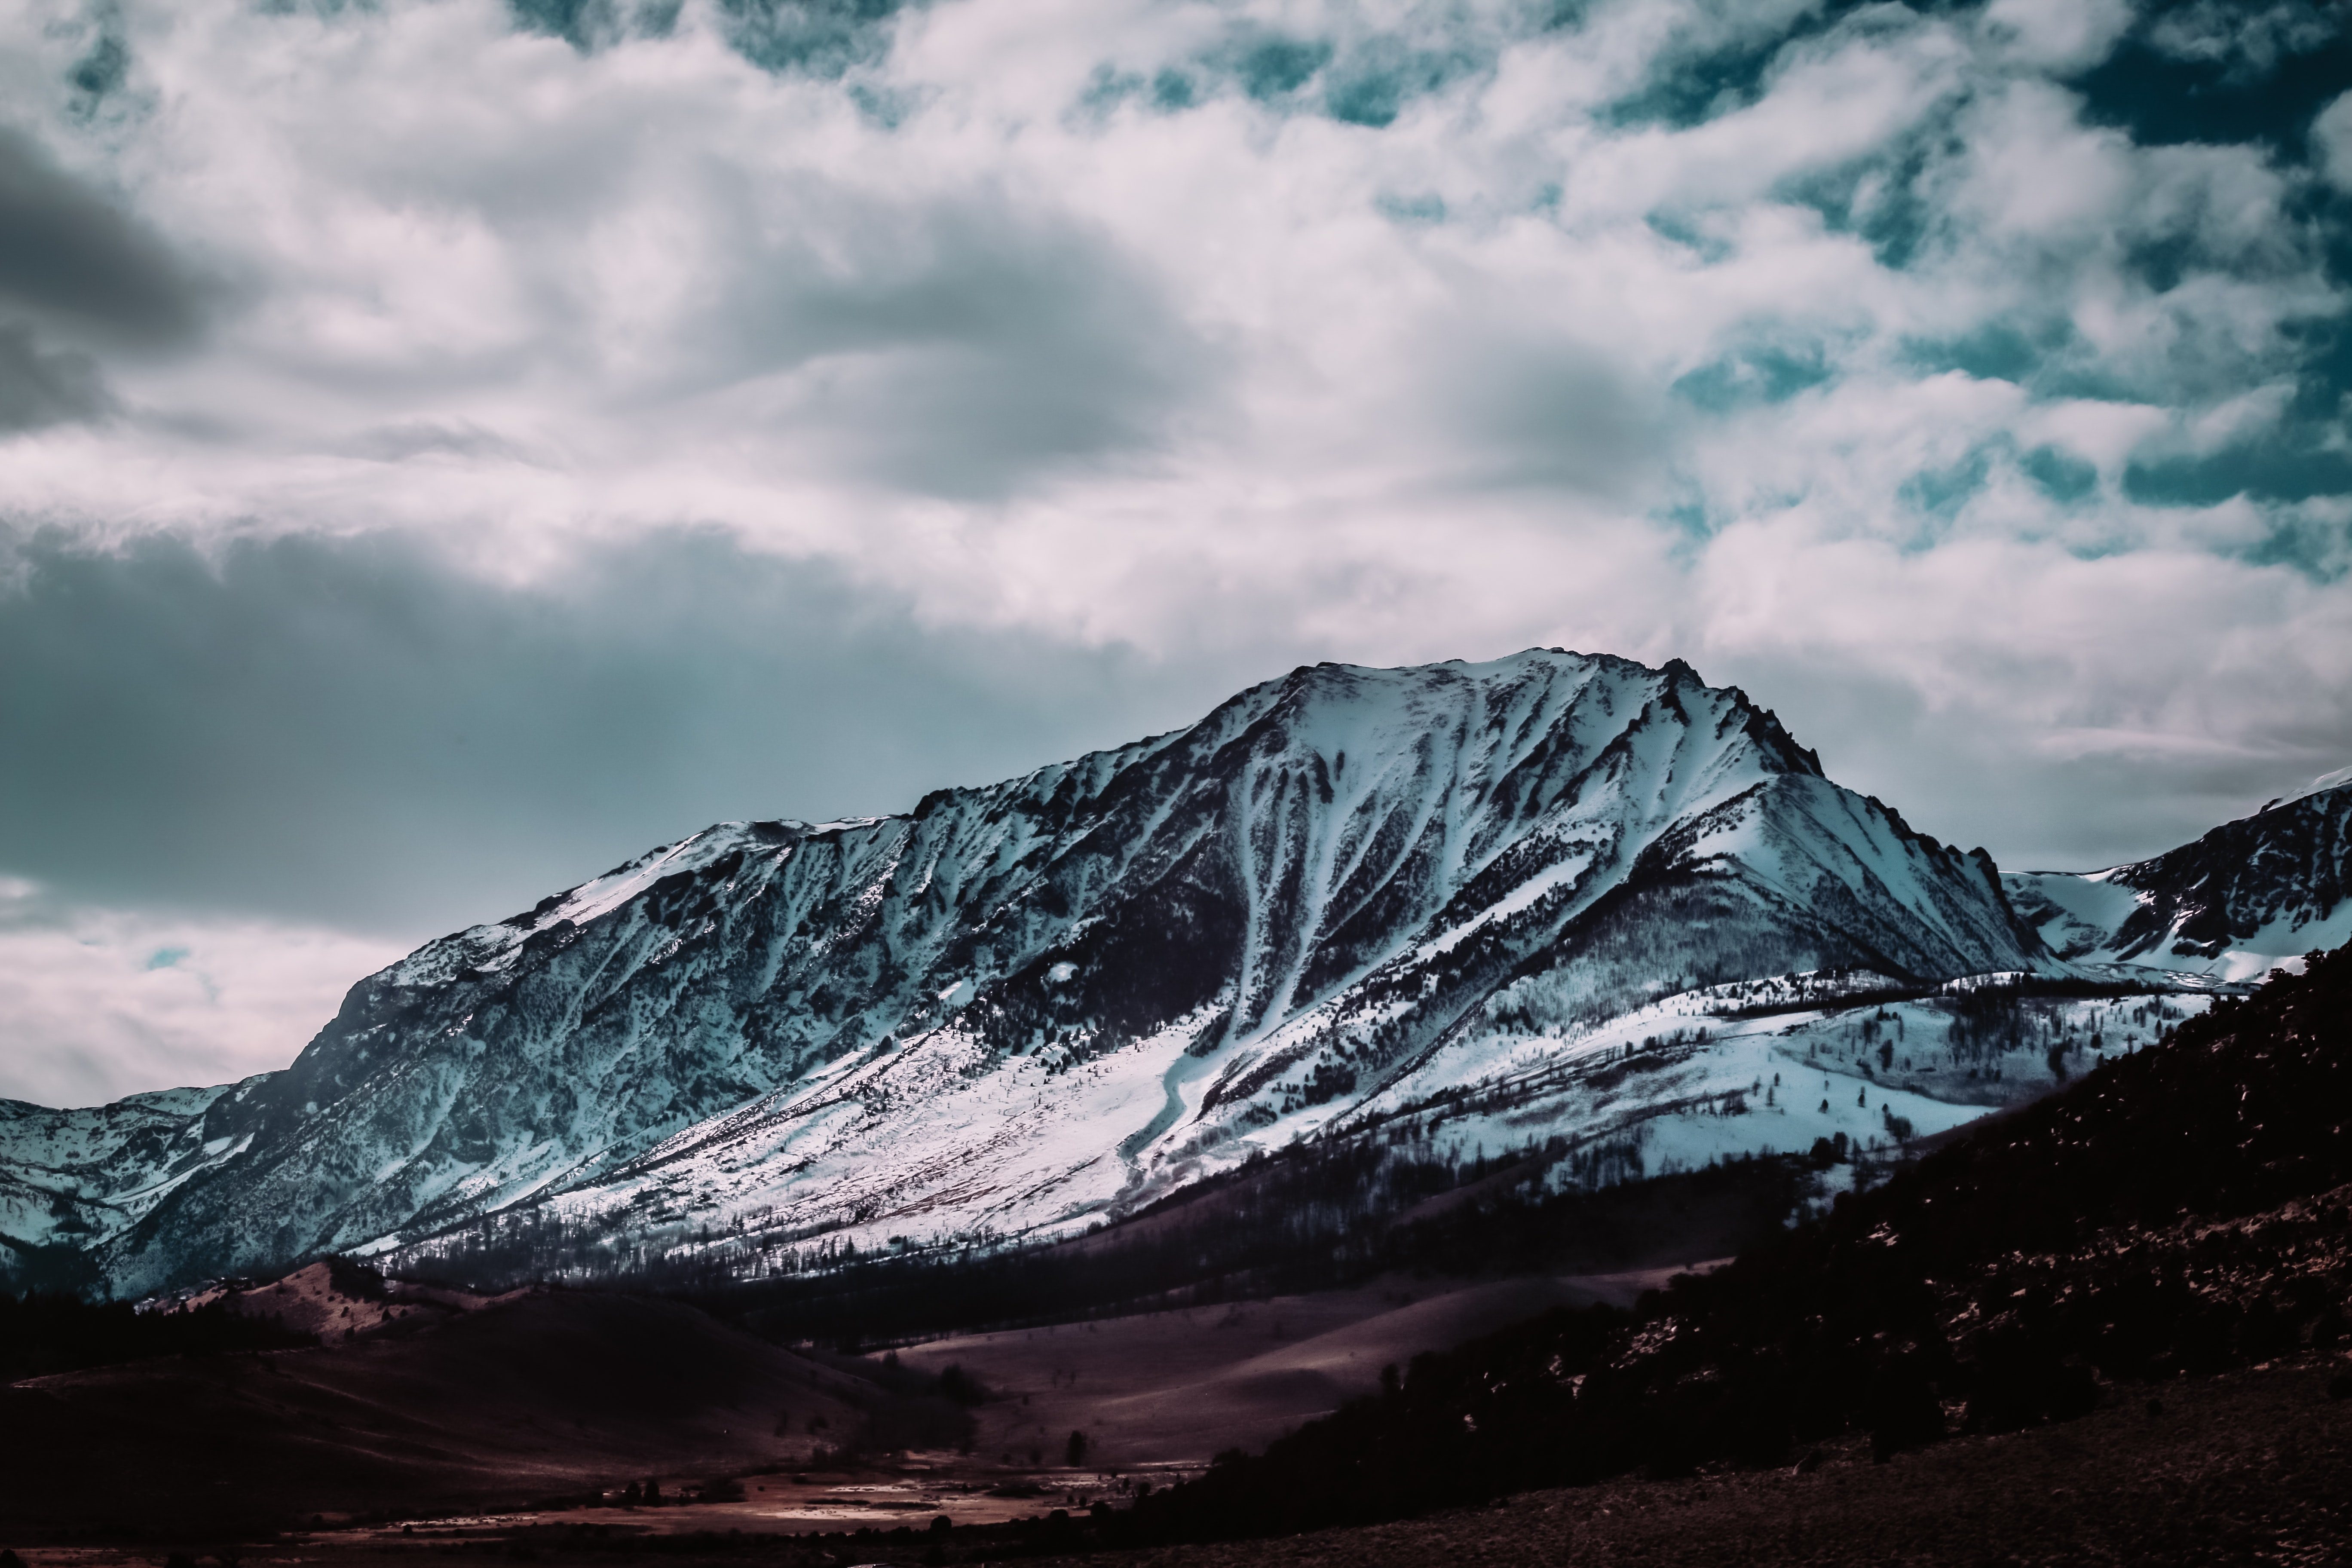 landscape photography of snow-covered mountains